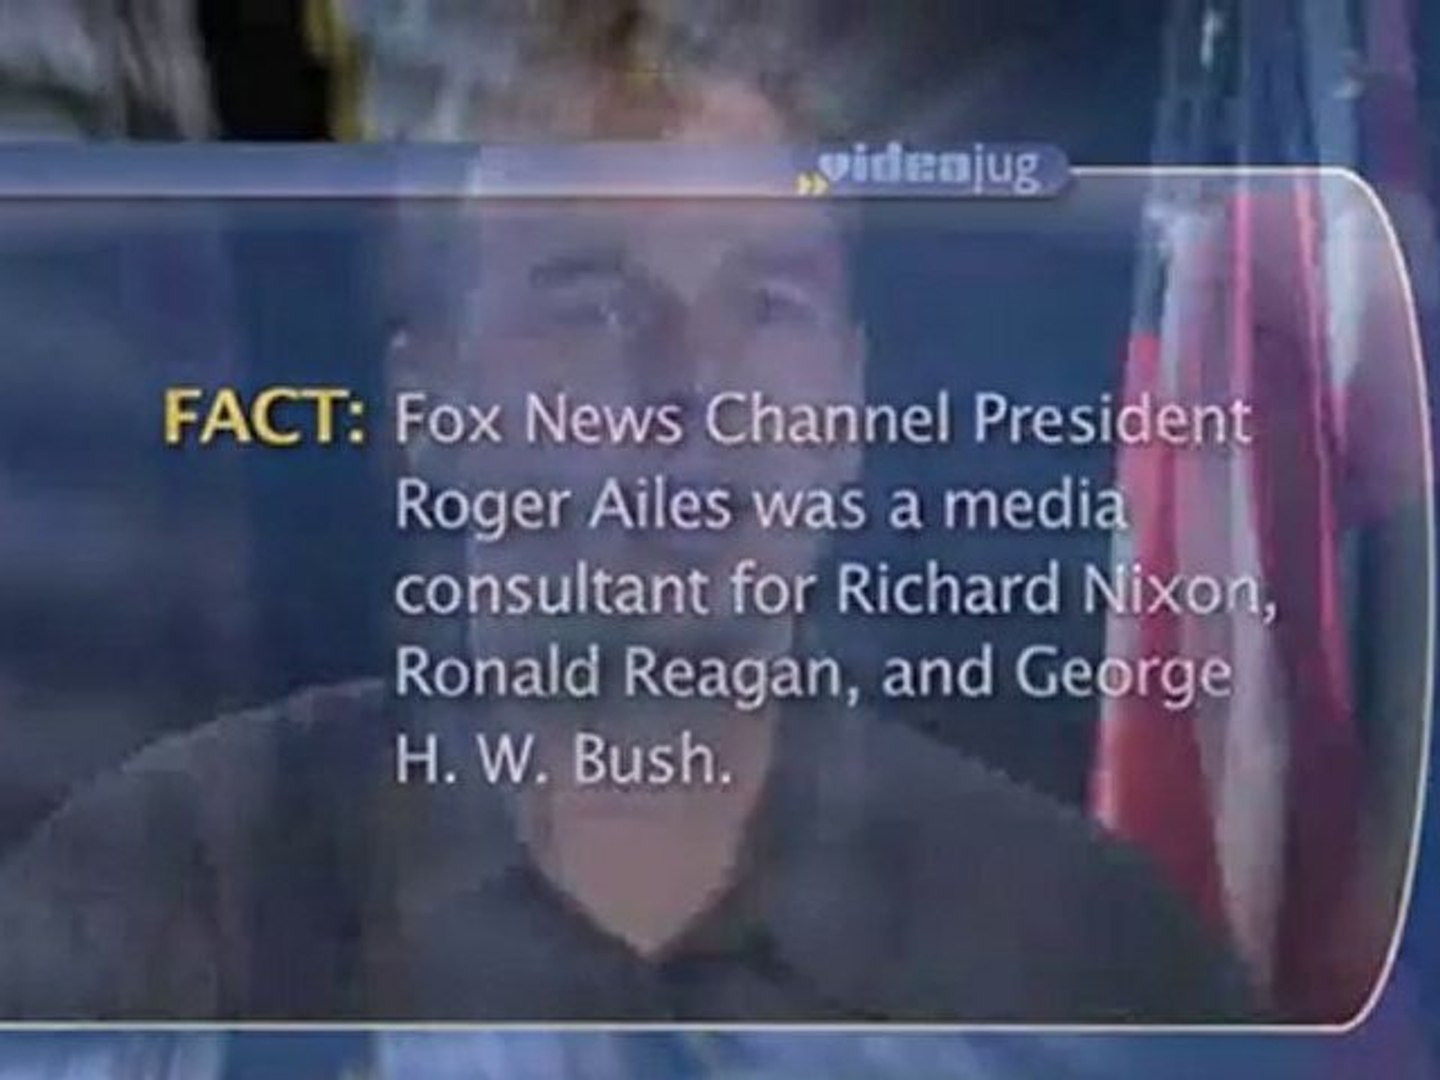 Political Parties On Media : How has Fox News changed the political landscape?